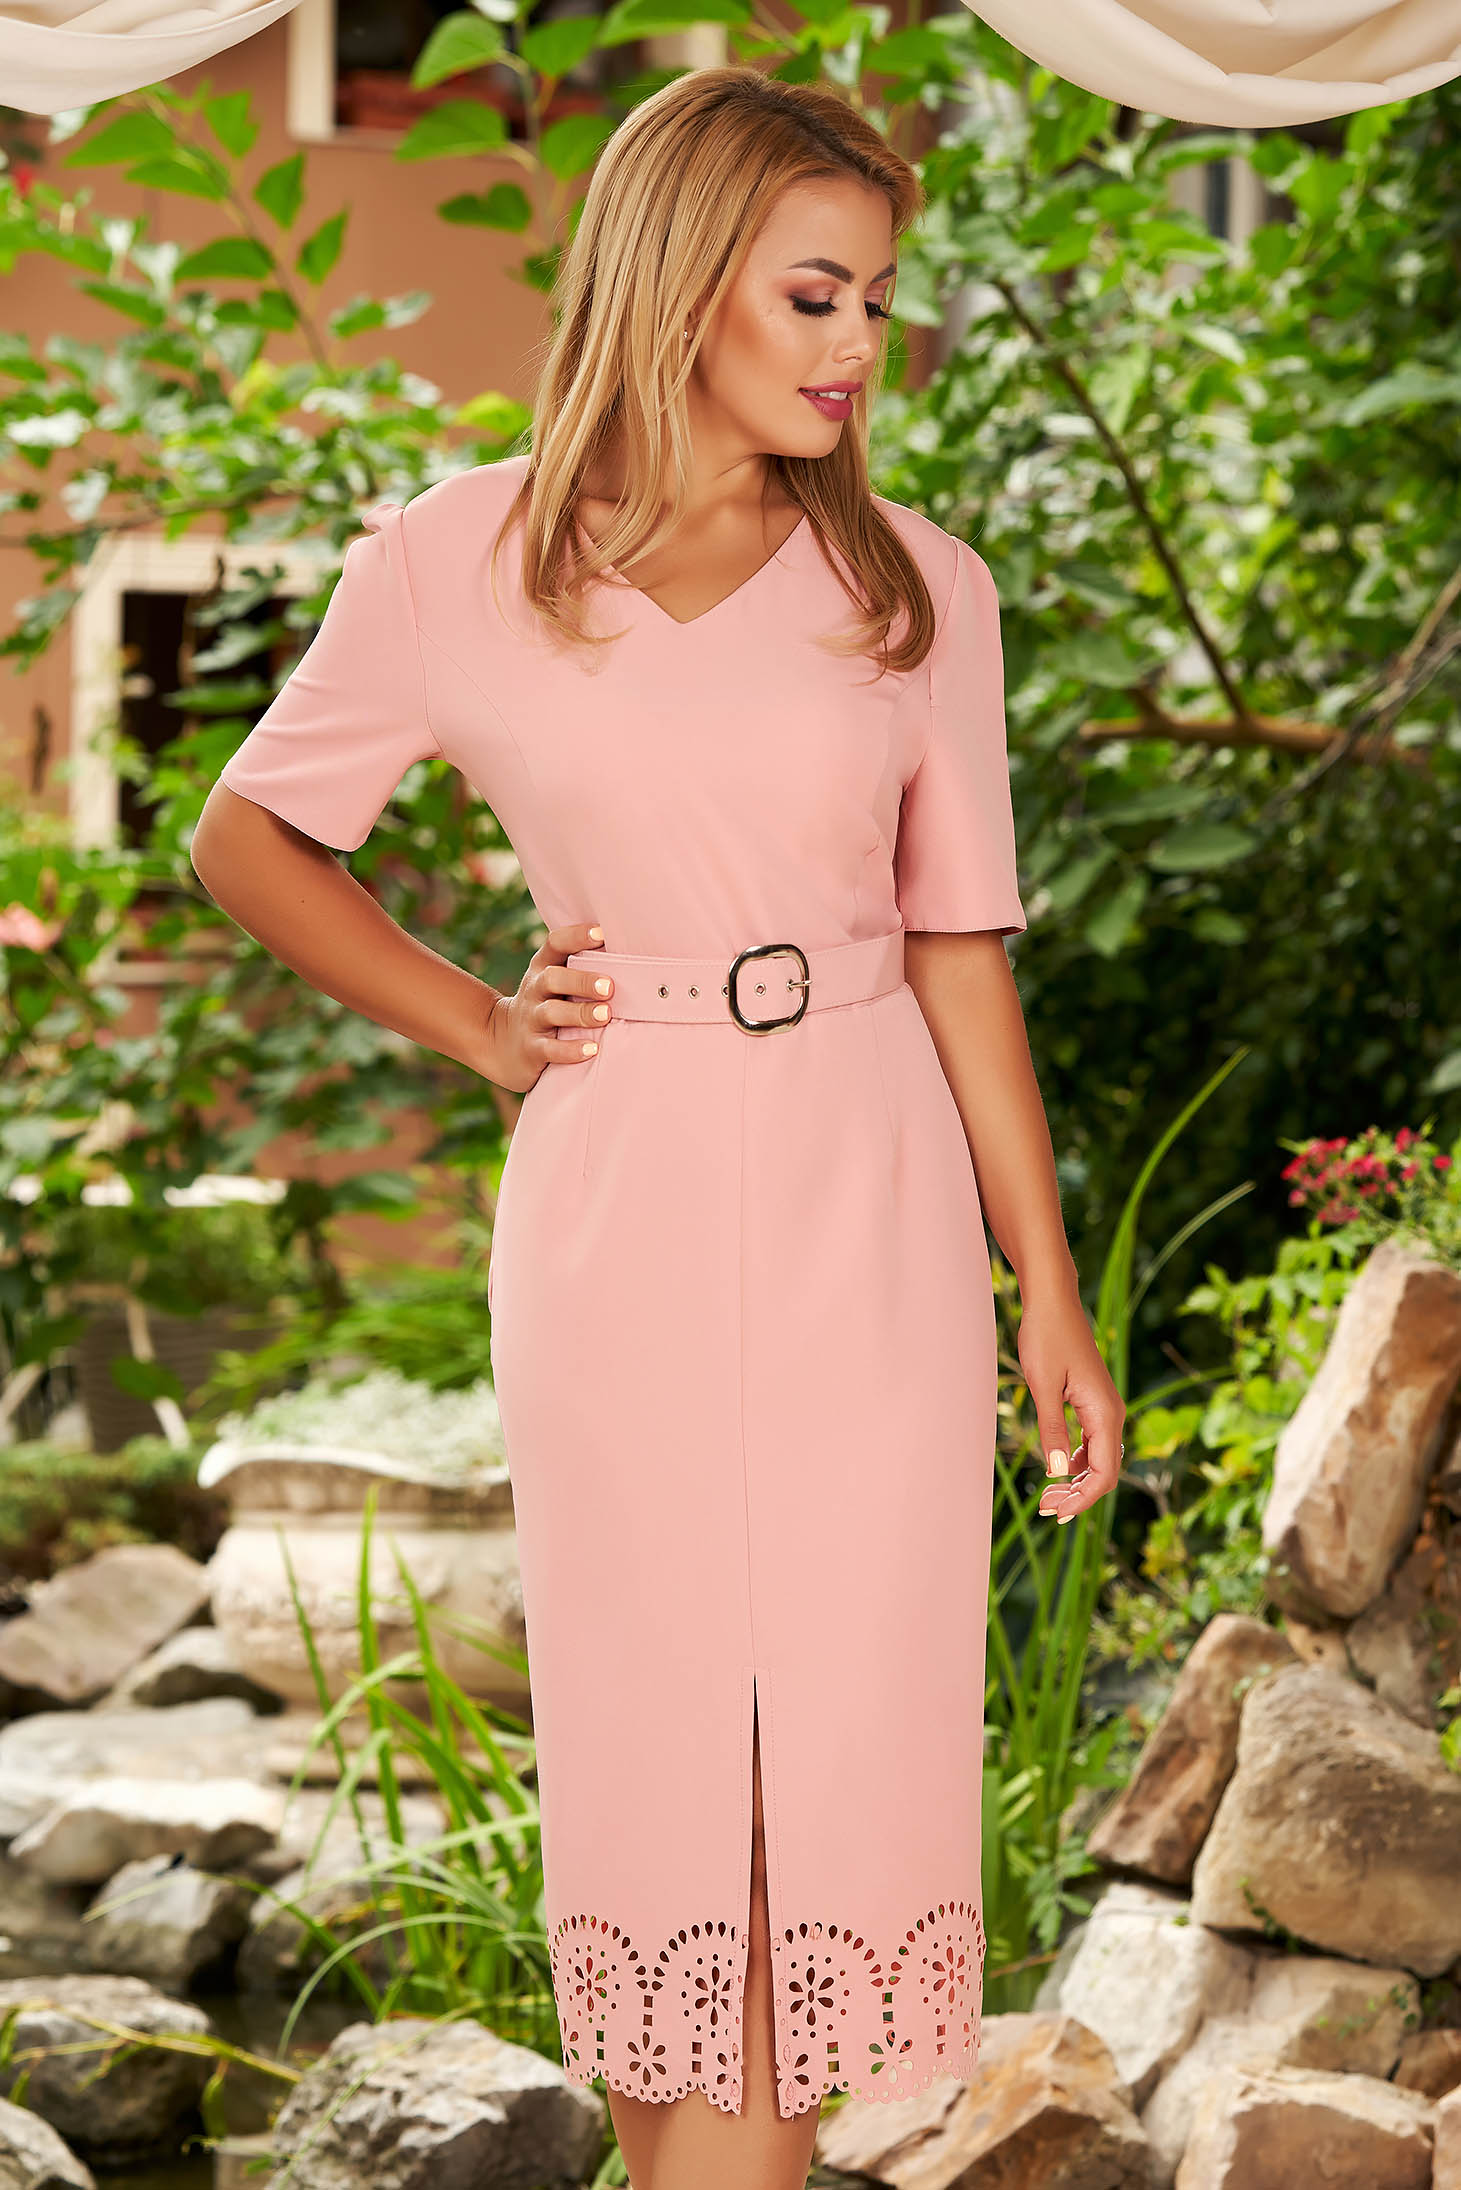 Lightpink dress elegant daily midi pencil with v-neckline with cut out material accessorized with belt